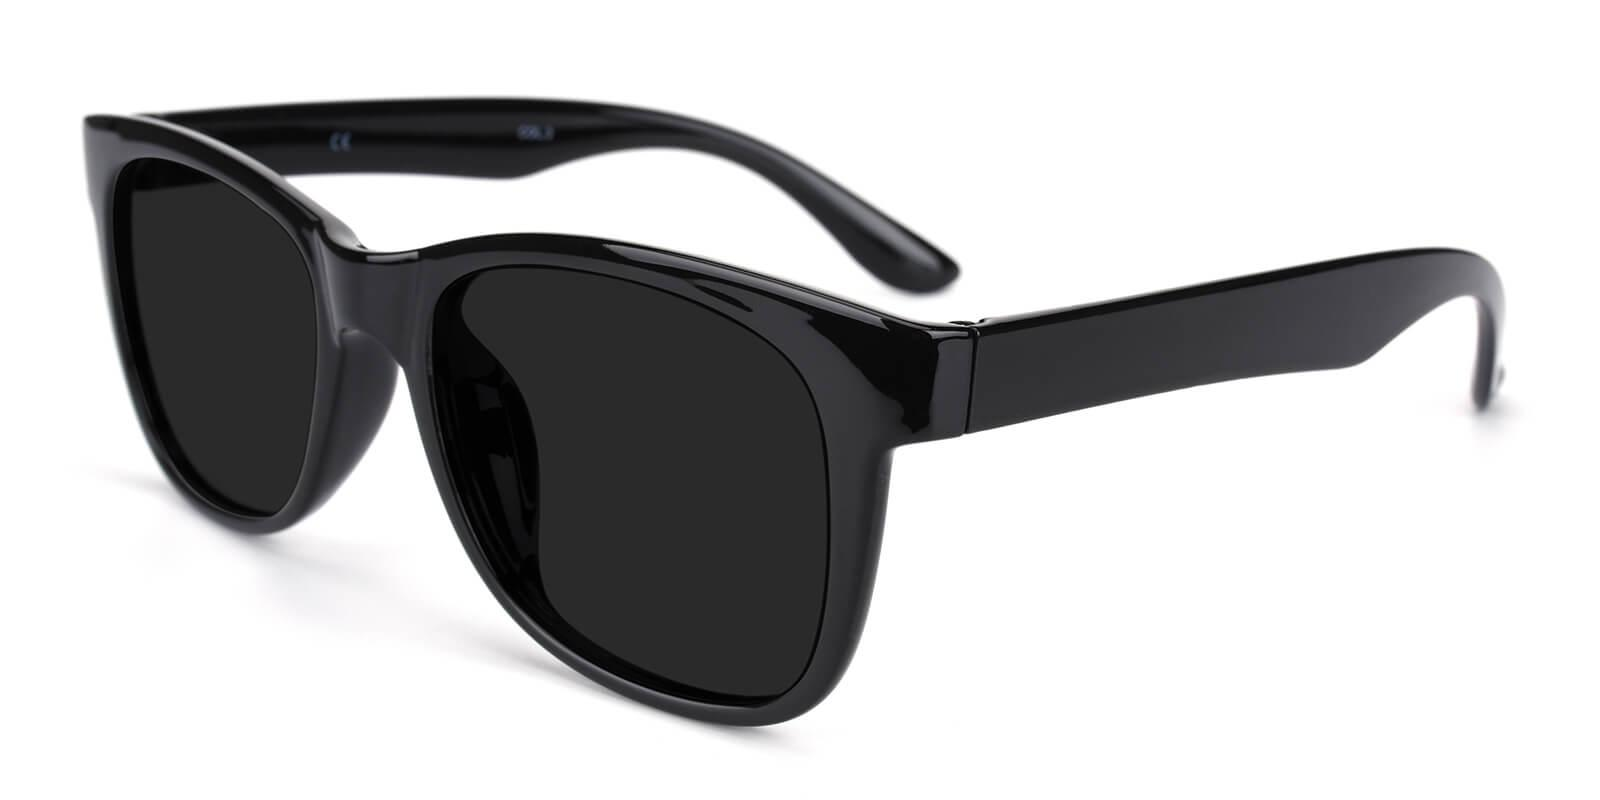 Tracly-Black-Square / Cat-TR-Sunglasses-additional1